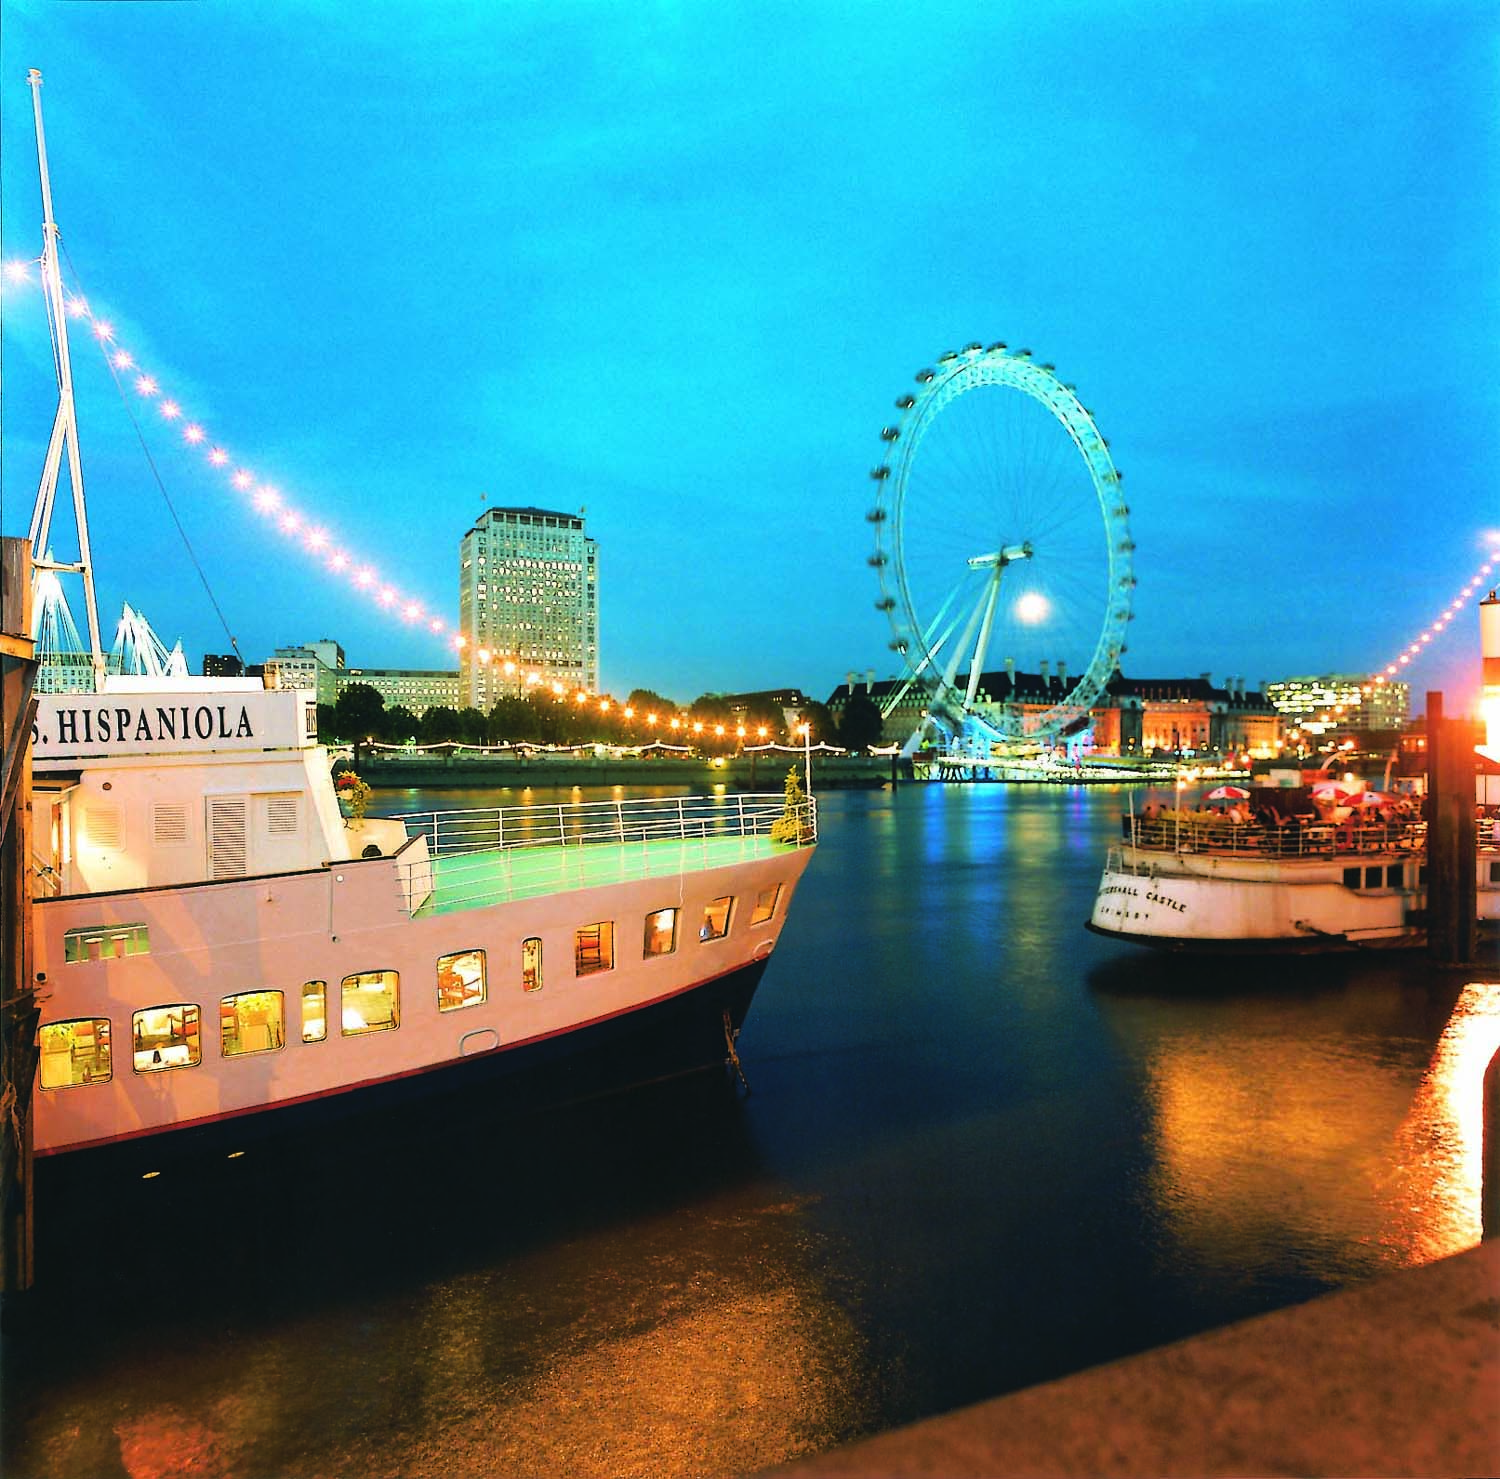 Rs Hispaniola Victoria Embankment Whitehall London Wc2n 5dj